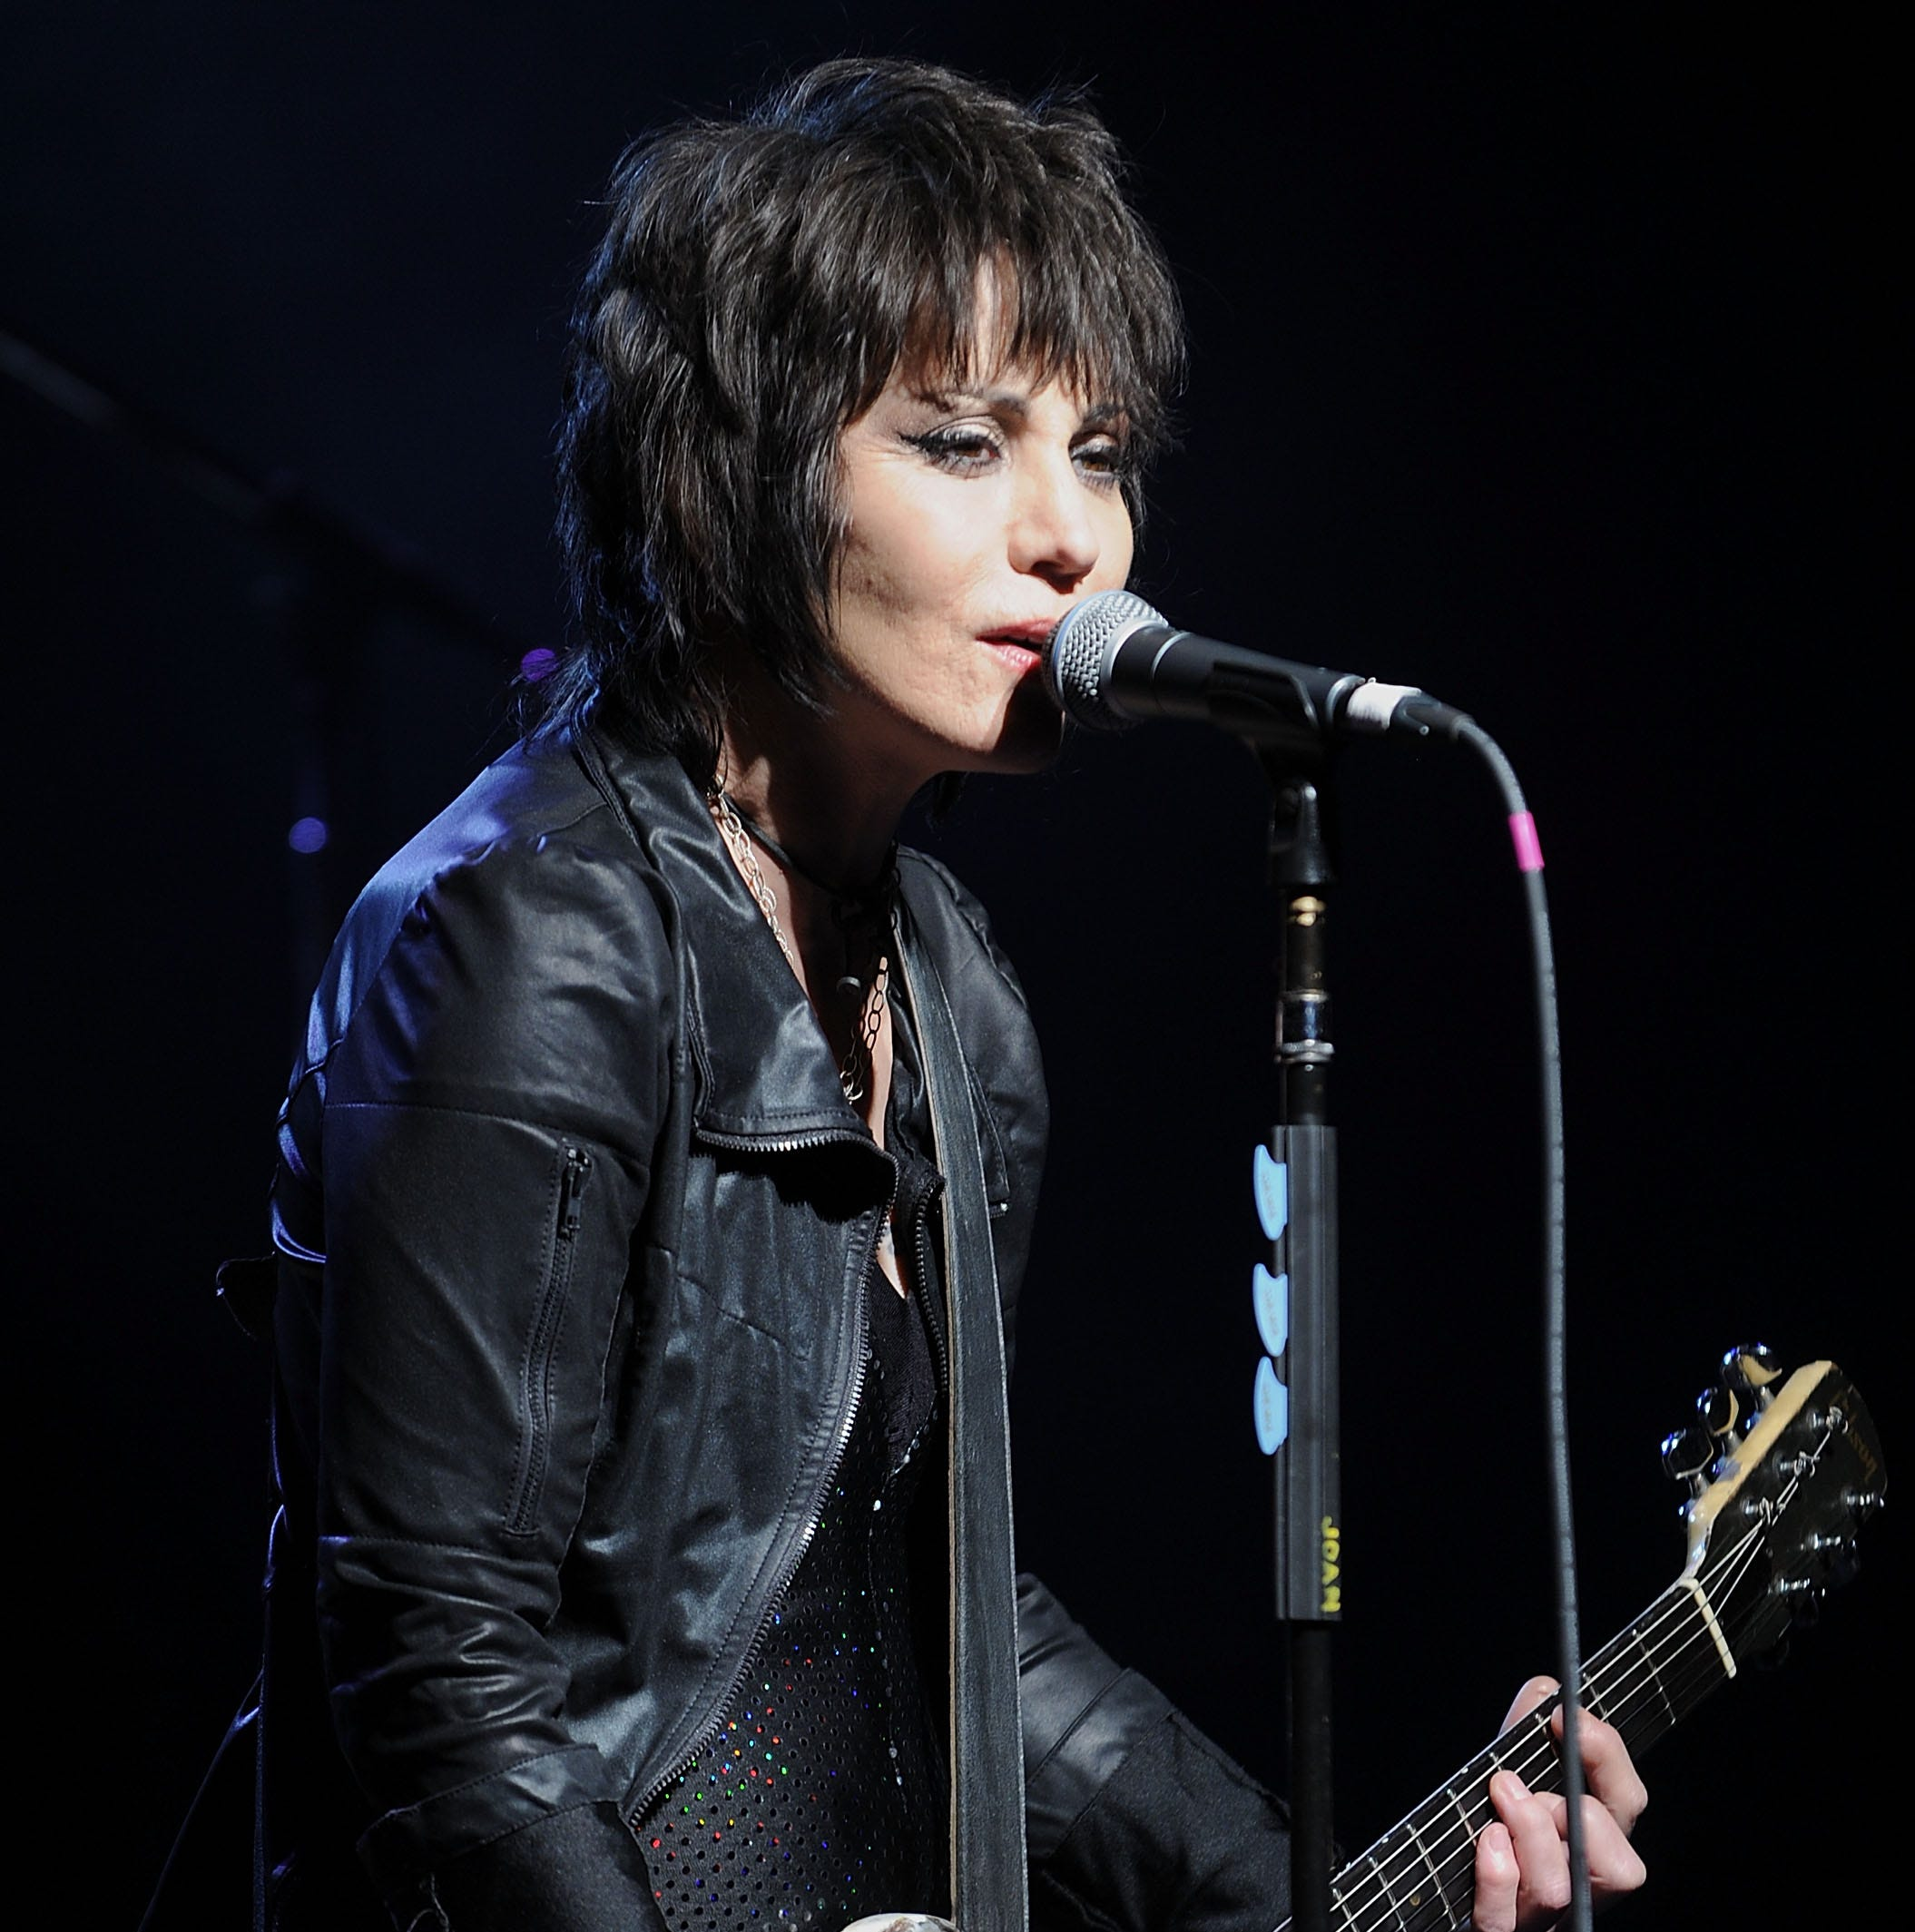 Joan Jett and the Blackhearts to play Waterfest in Oshkosh